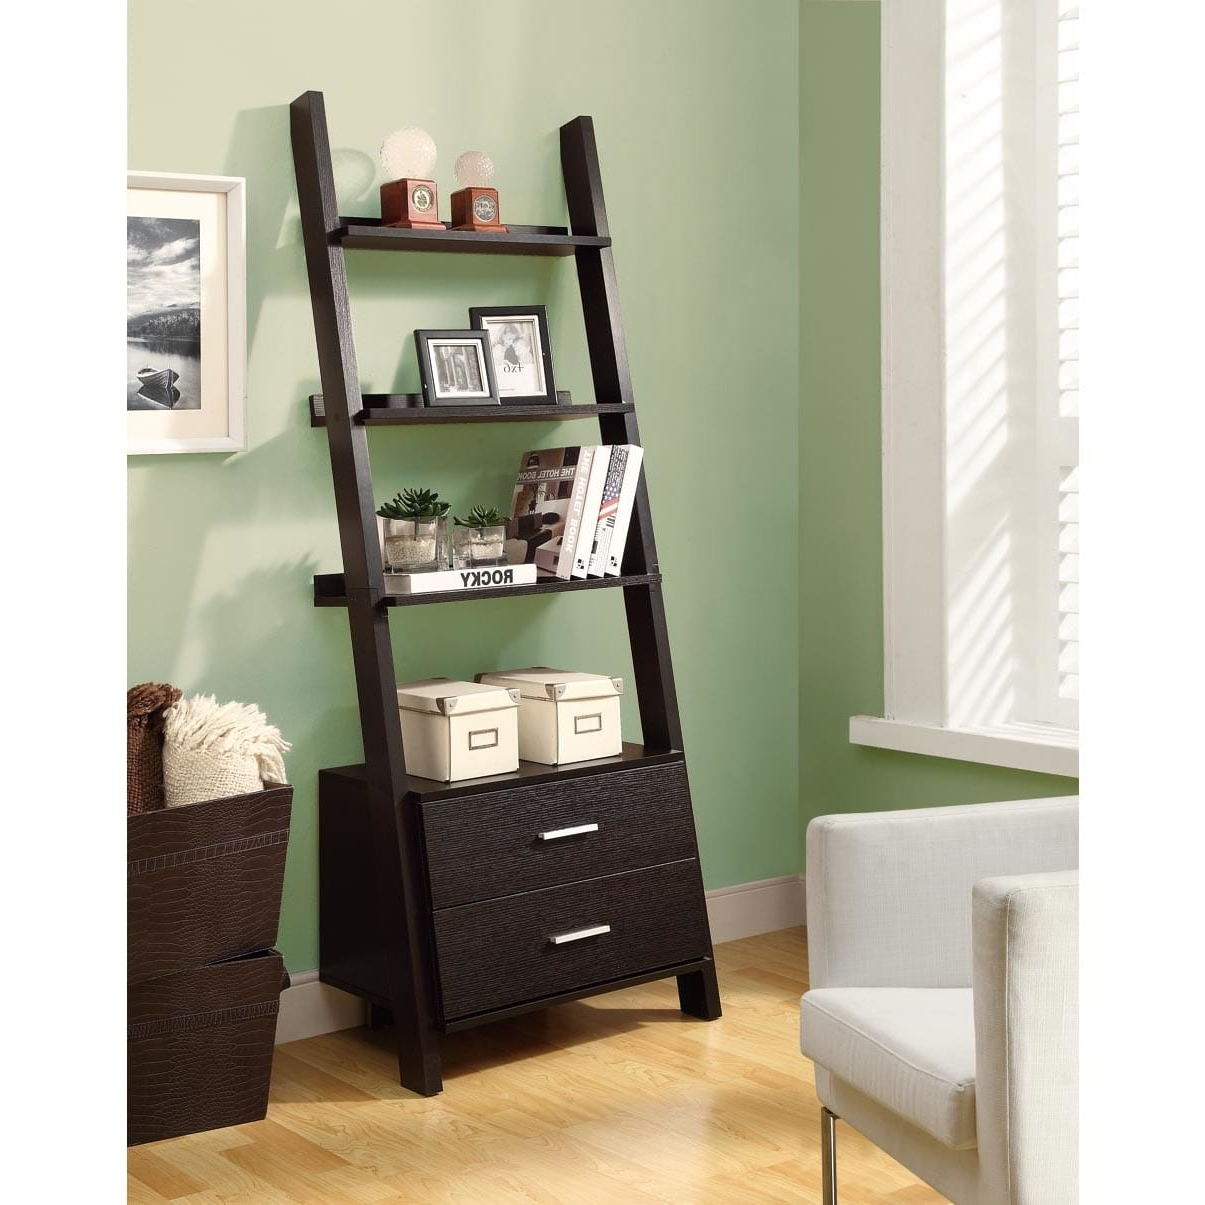 Ladder Bookcases With Drawers With Regard To Favorite Cappuccino 69 Inch Ladder Bookcase With Storage Drawers – Free (View 9 of 15)